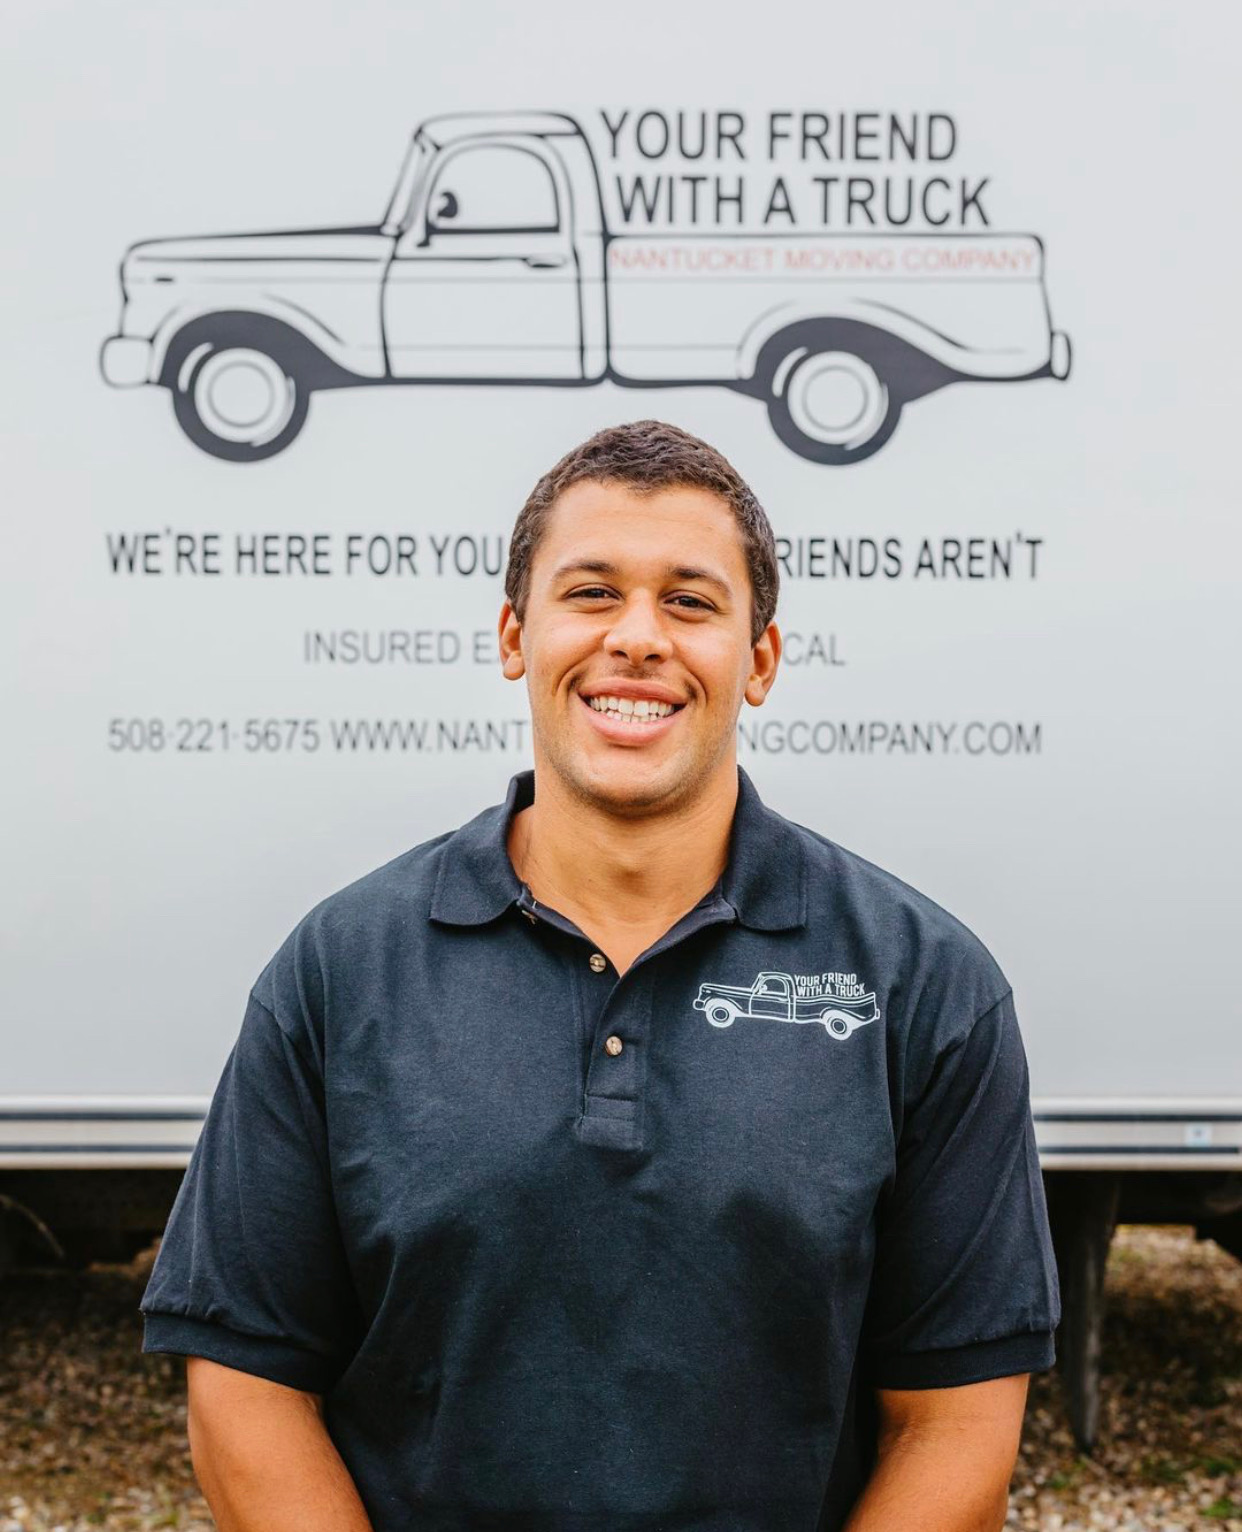 Image for Storefront Stories: Your Friend With a Truck